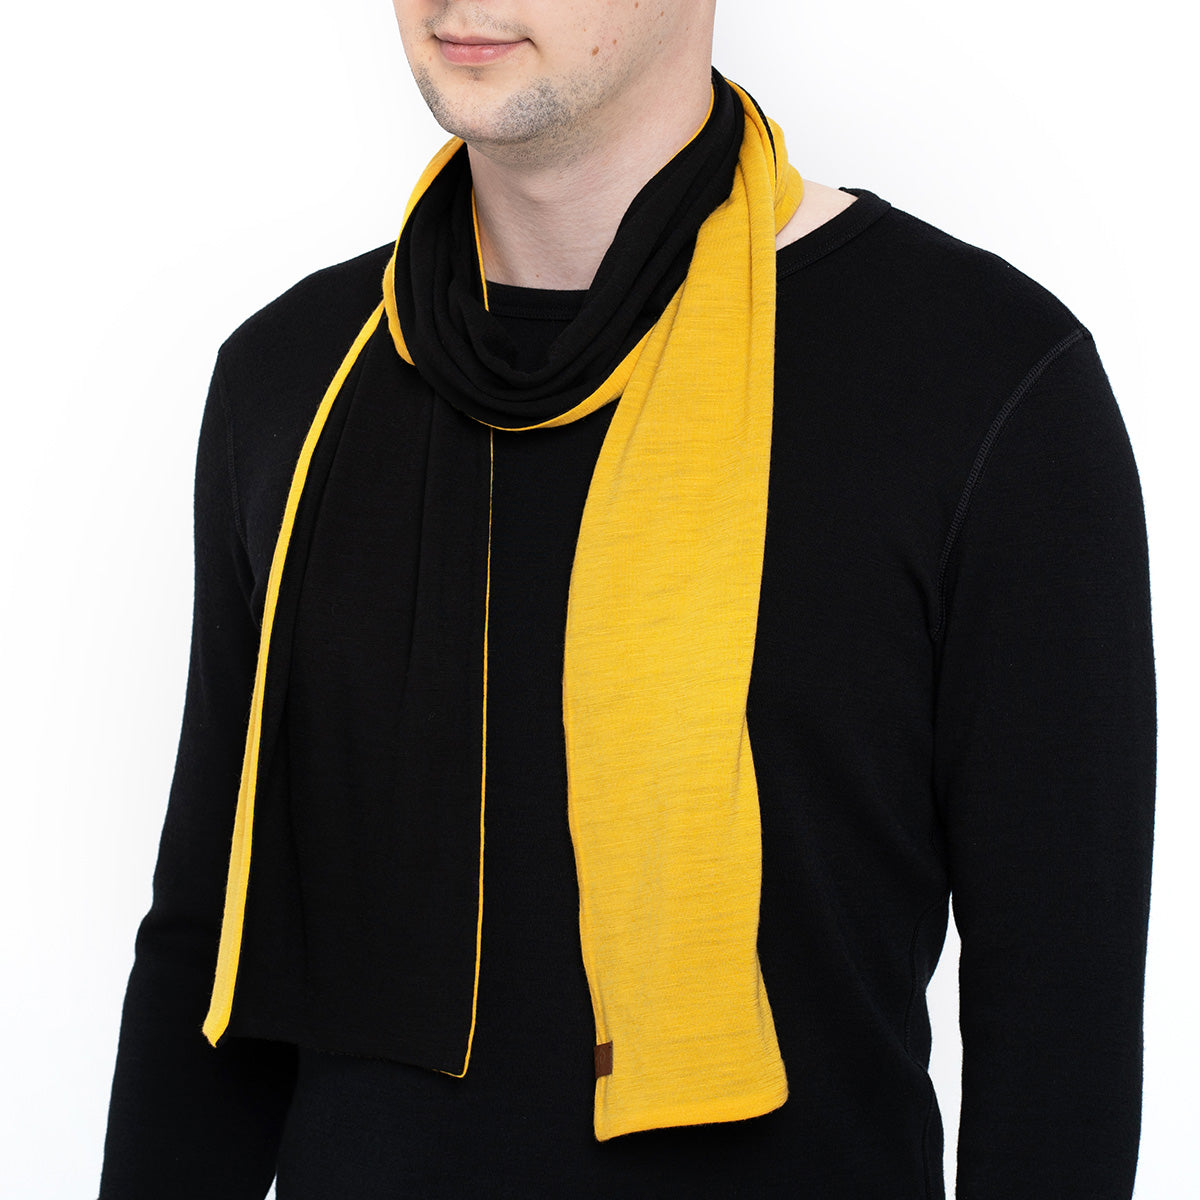 menique Men's Merino Scarf Power Mango/Black Color